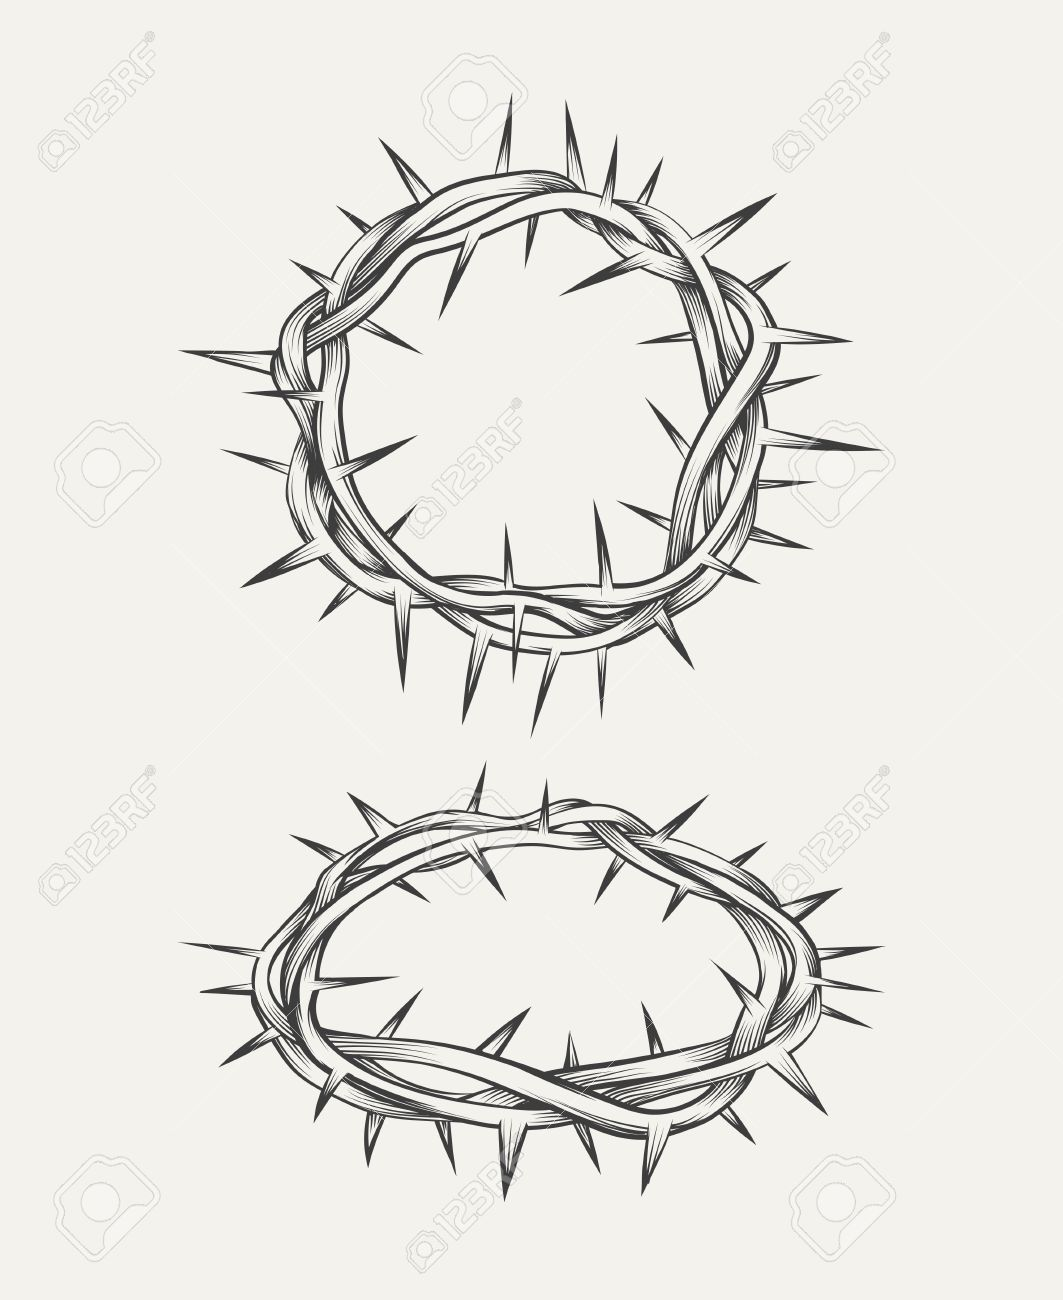 Crown Of Thorns Drawing at GetDrawings.com | Free for personal use ...